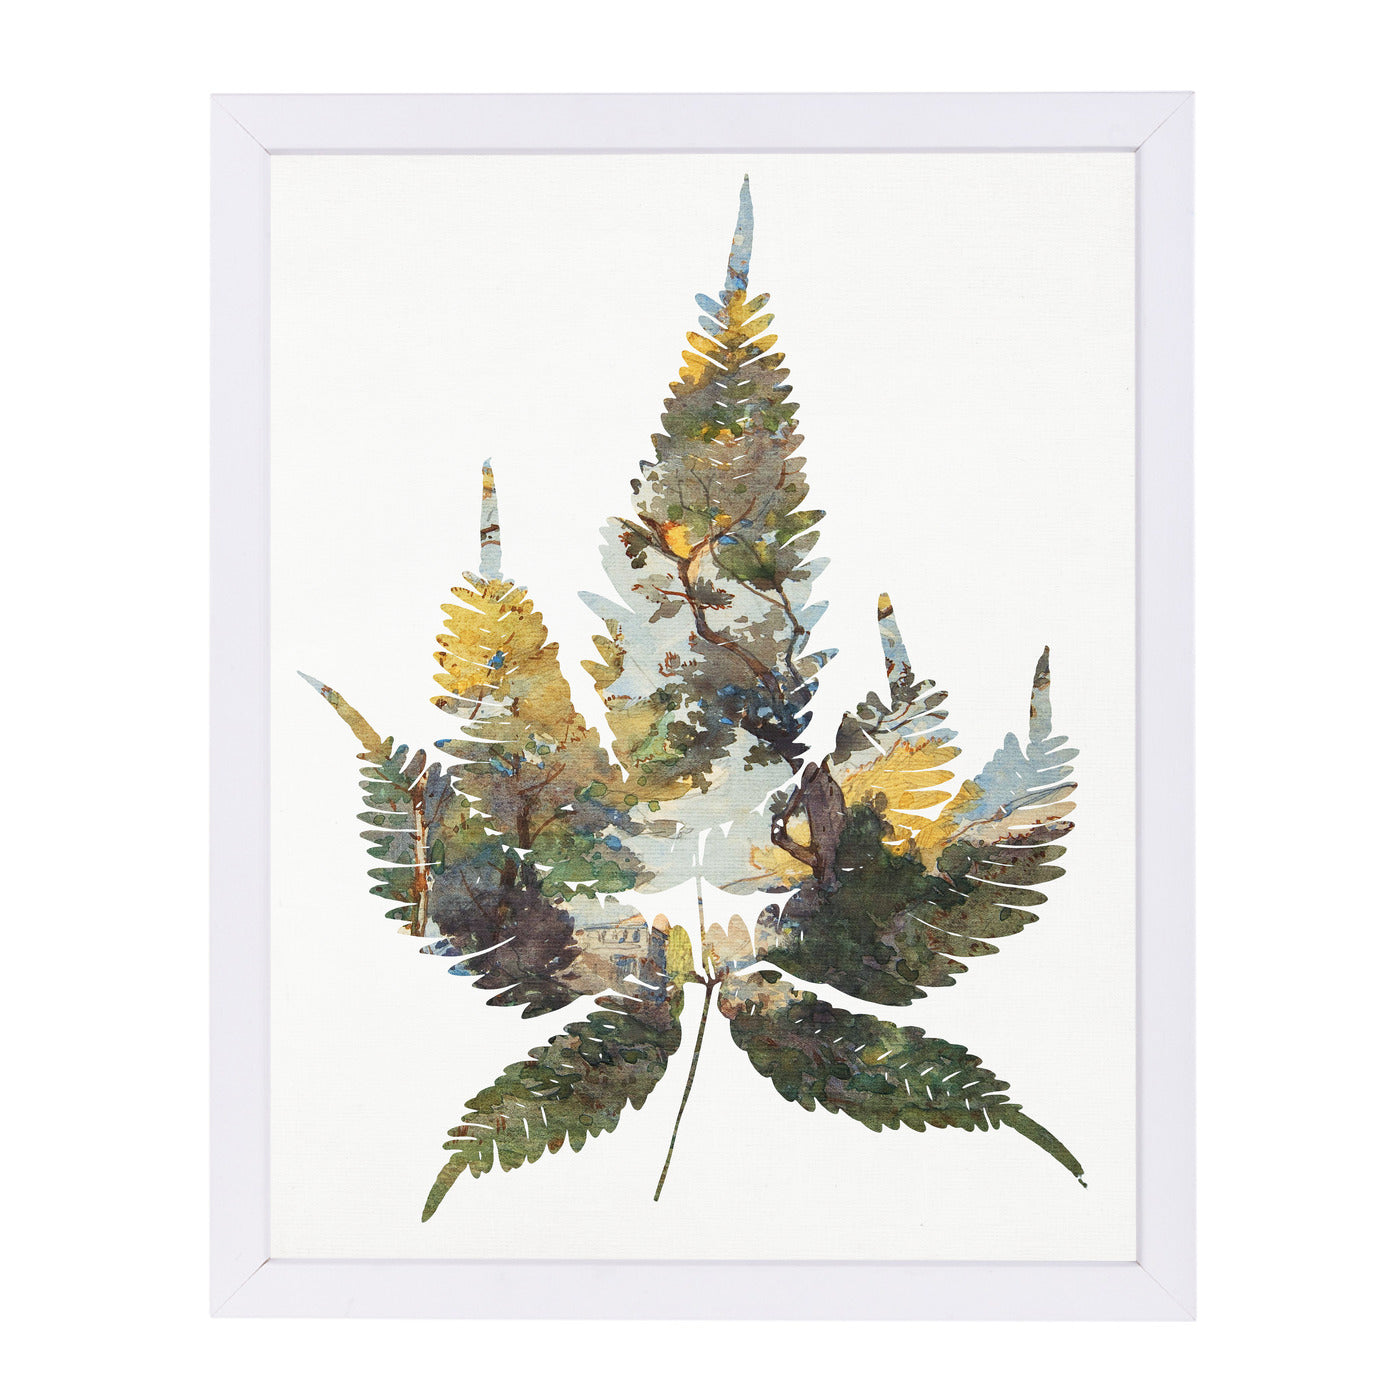 Leaf Collage I By Chaos & Wonder Design - White Framed Print - Wall Art - Americanflat